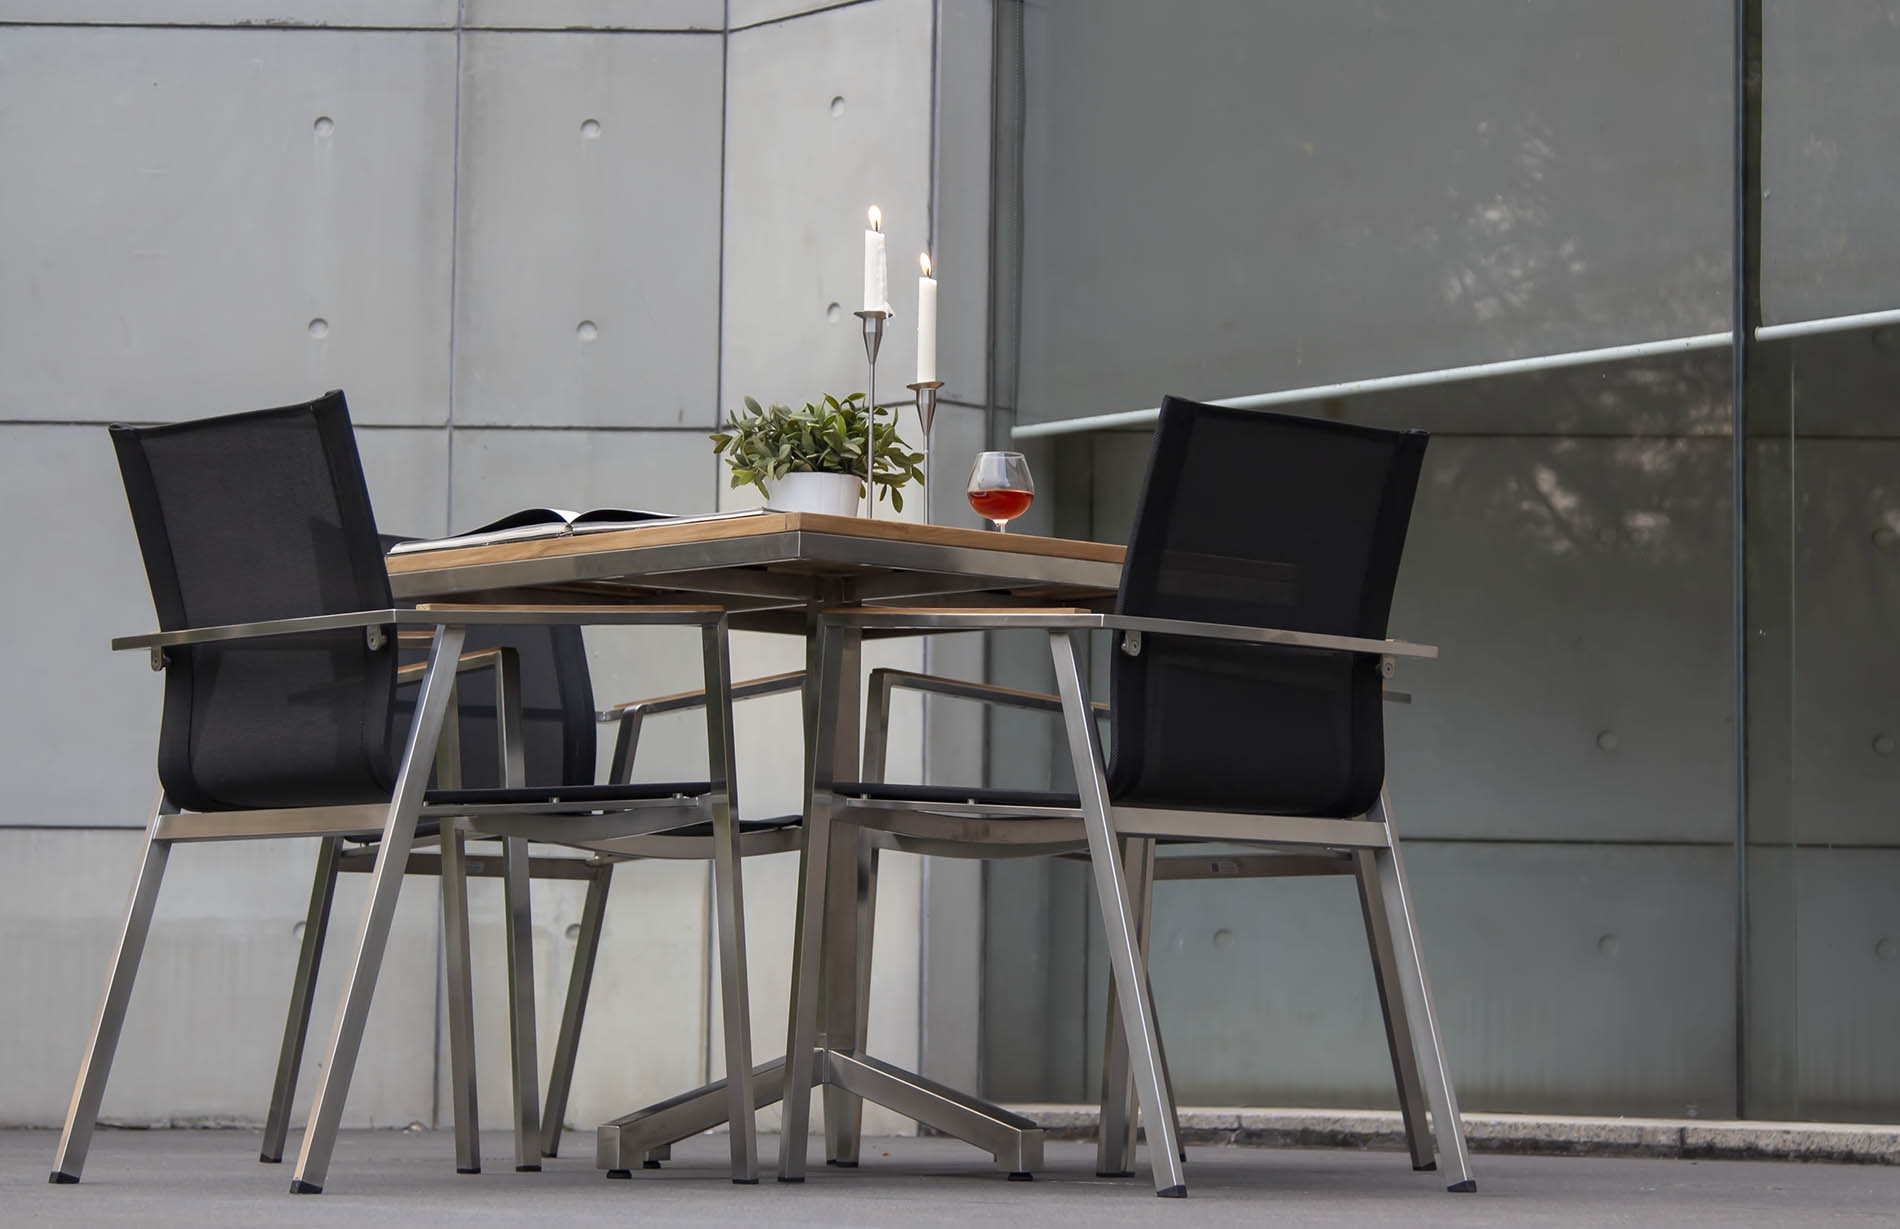 FRANK DINING CHAIR (Sling) AND FRANK PEDESTEL TABLE